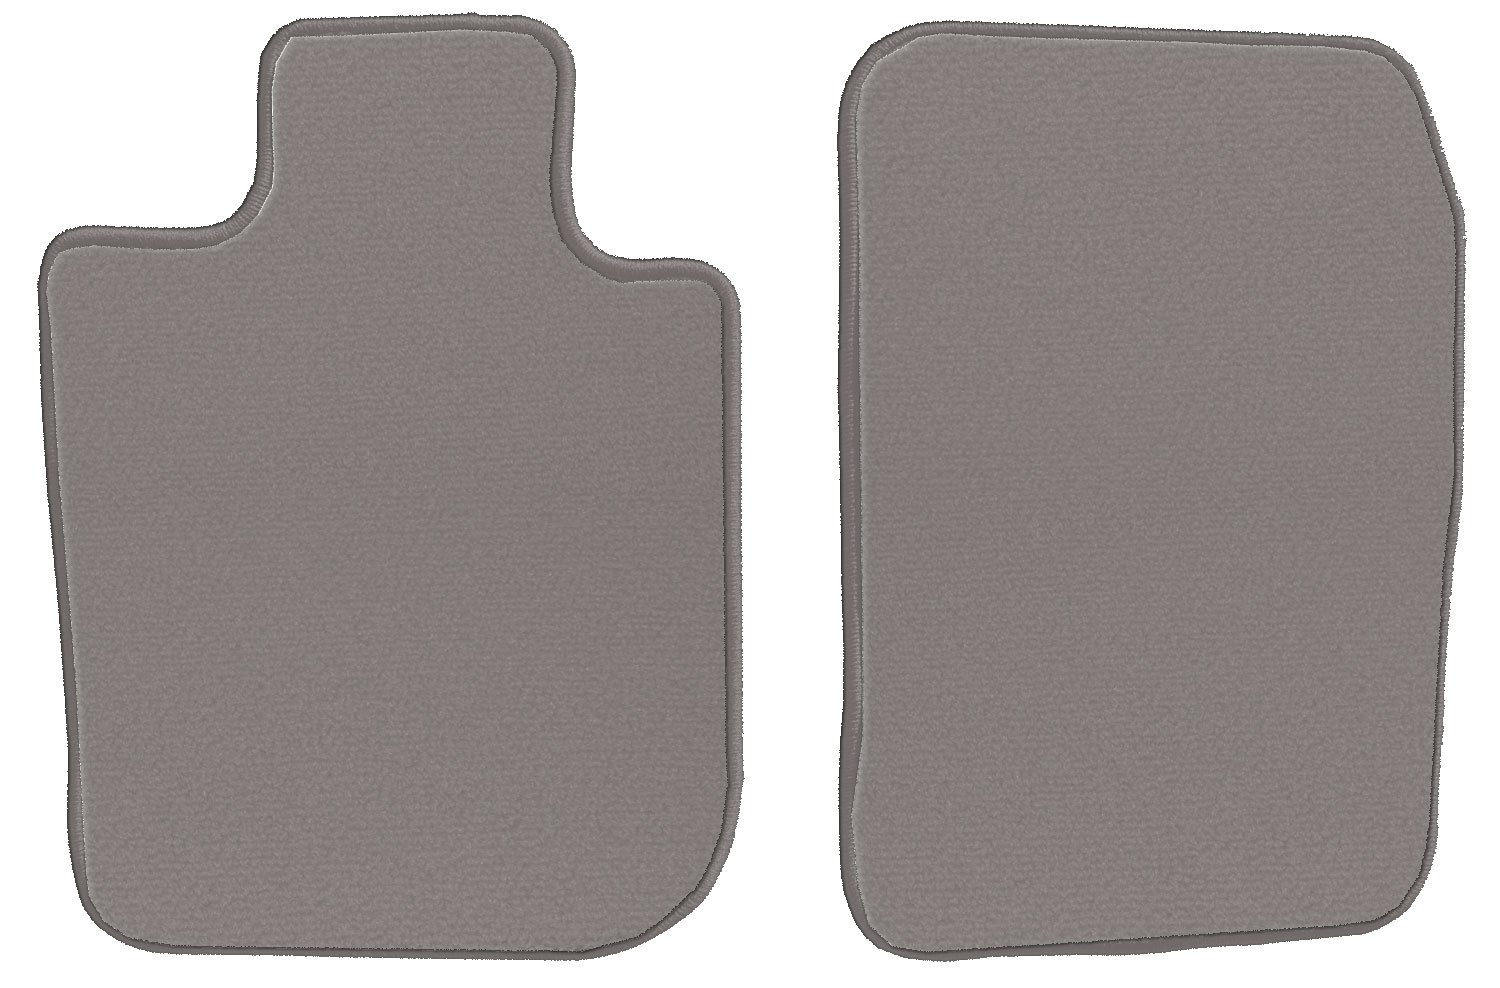 2010 2005 2007 2009 2008 GGBAILEY D3411A-F1A-GY-LP Custom Fit Car Mats for 2004 2006 2011 Saab 9-3 Convertible Grey Loop Driver /& Passenger Floor